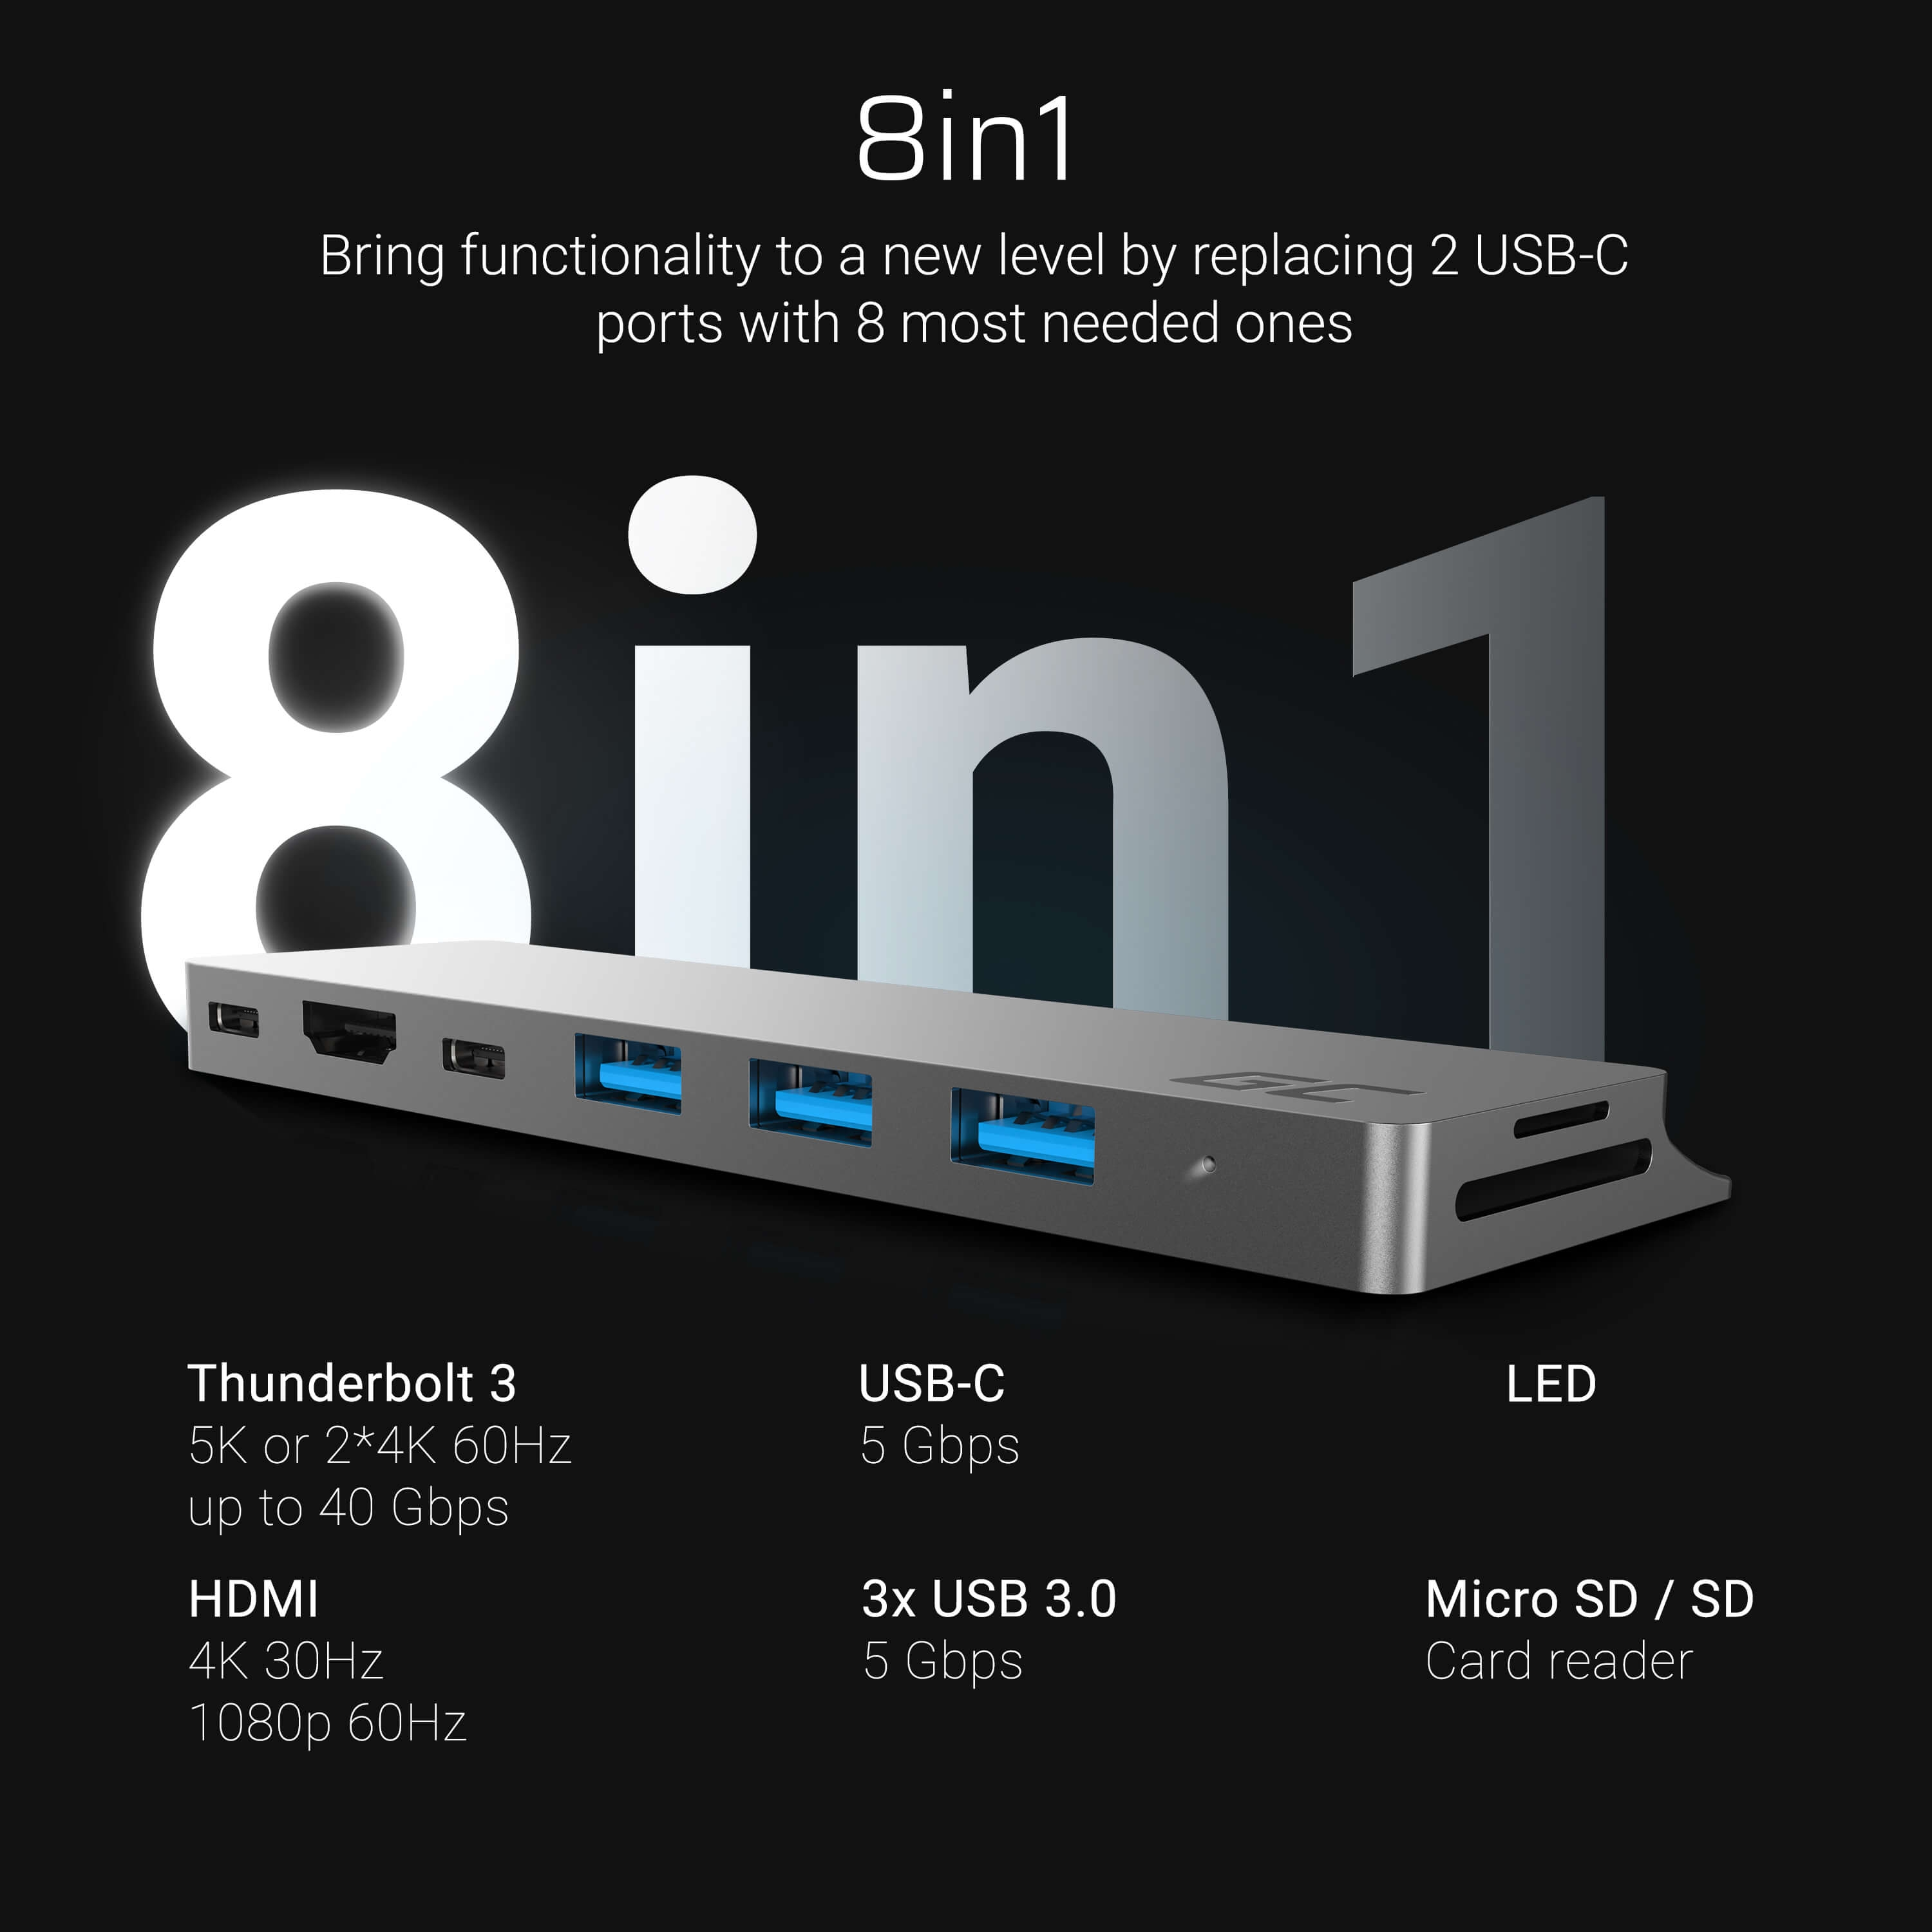 Adapter Green Cell HUB Connect60 8in1 (Thunderbolt 3, USB-C, HDMI, 3x USB 3.0) pro Apple MacBook Air 2018, Pro 2016 - 2020